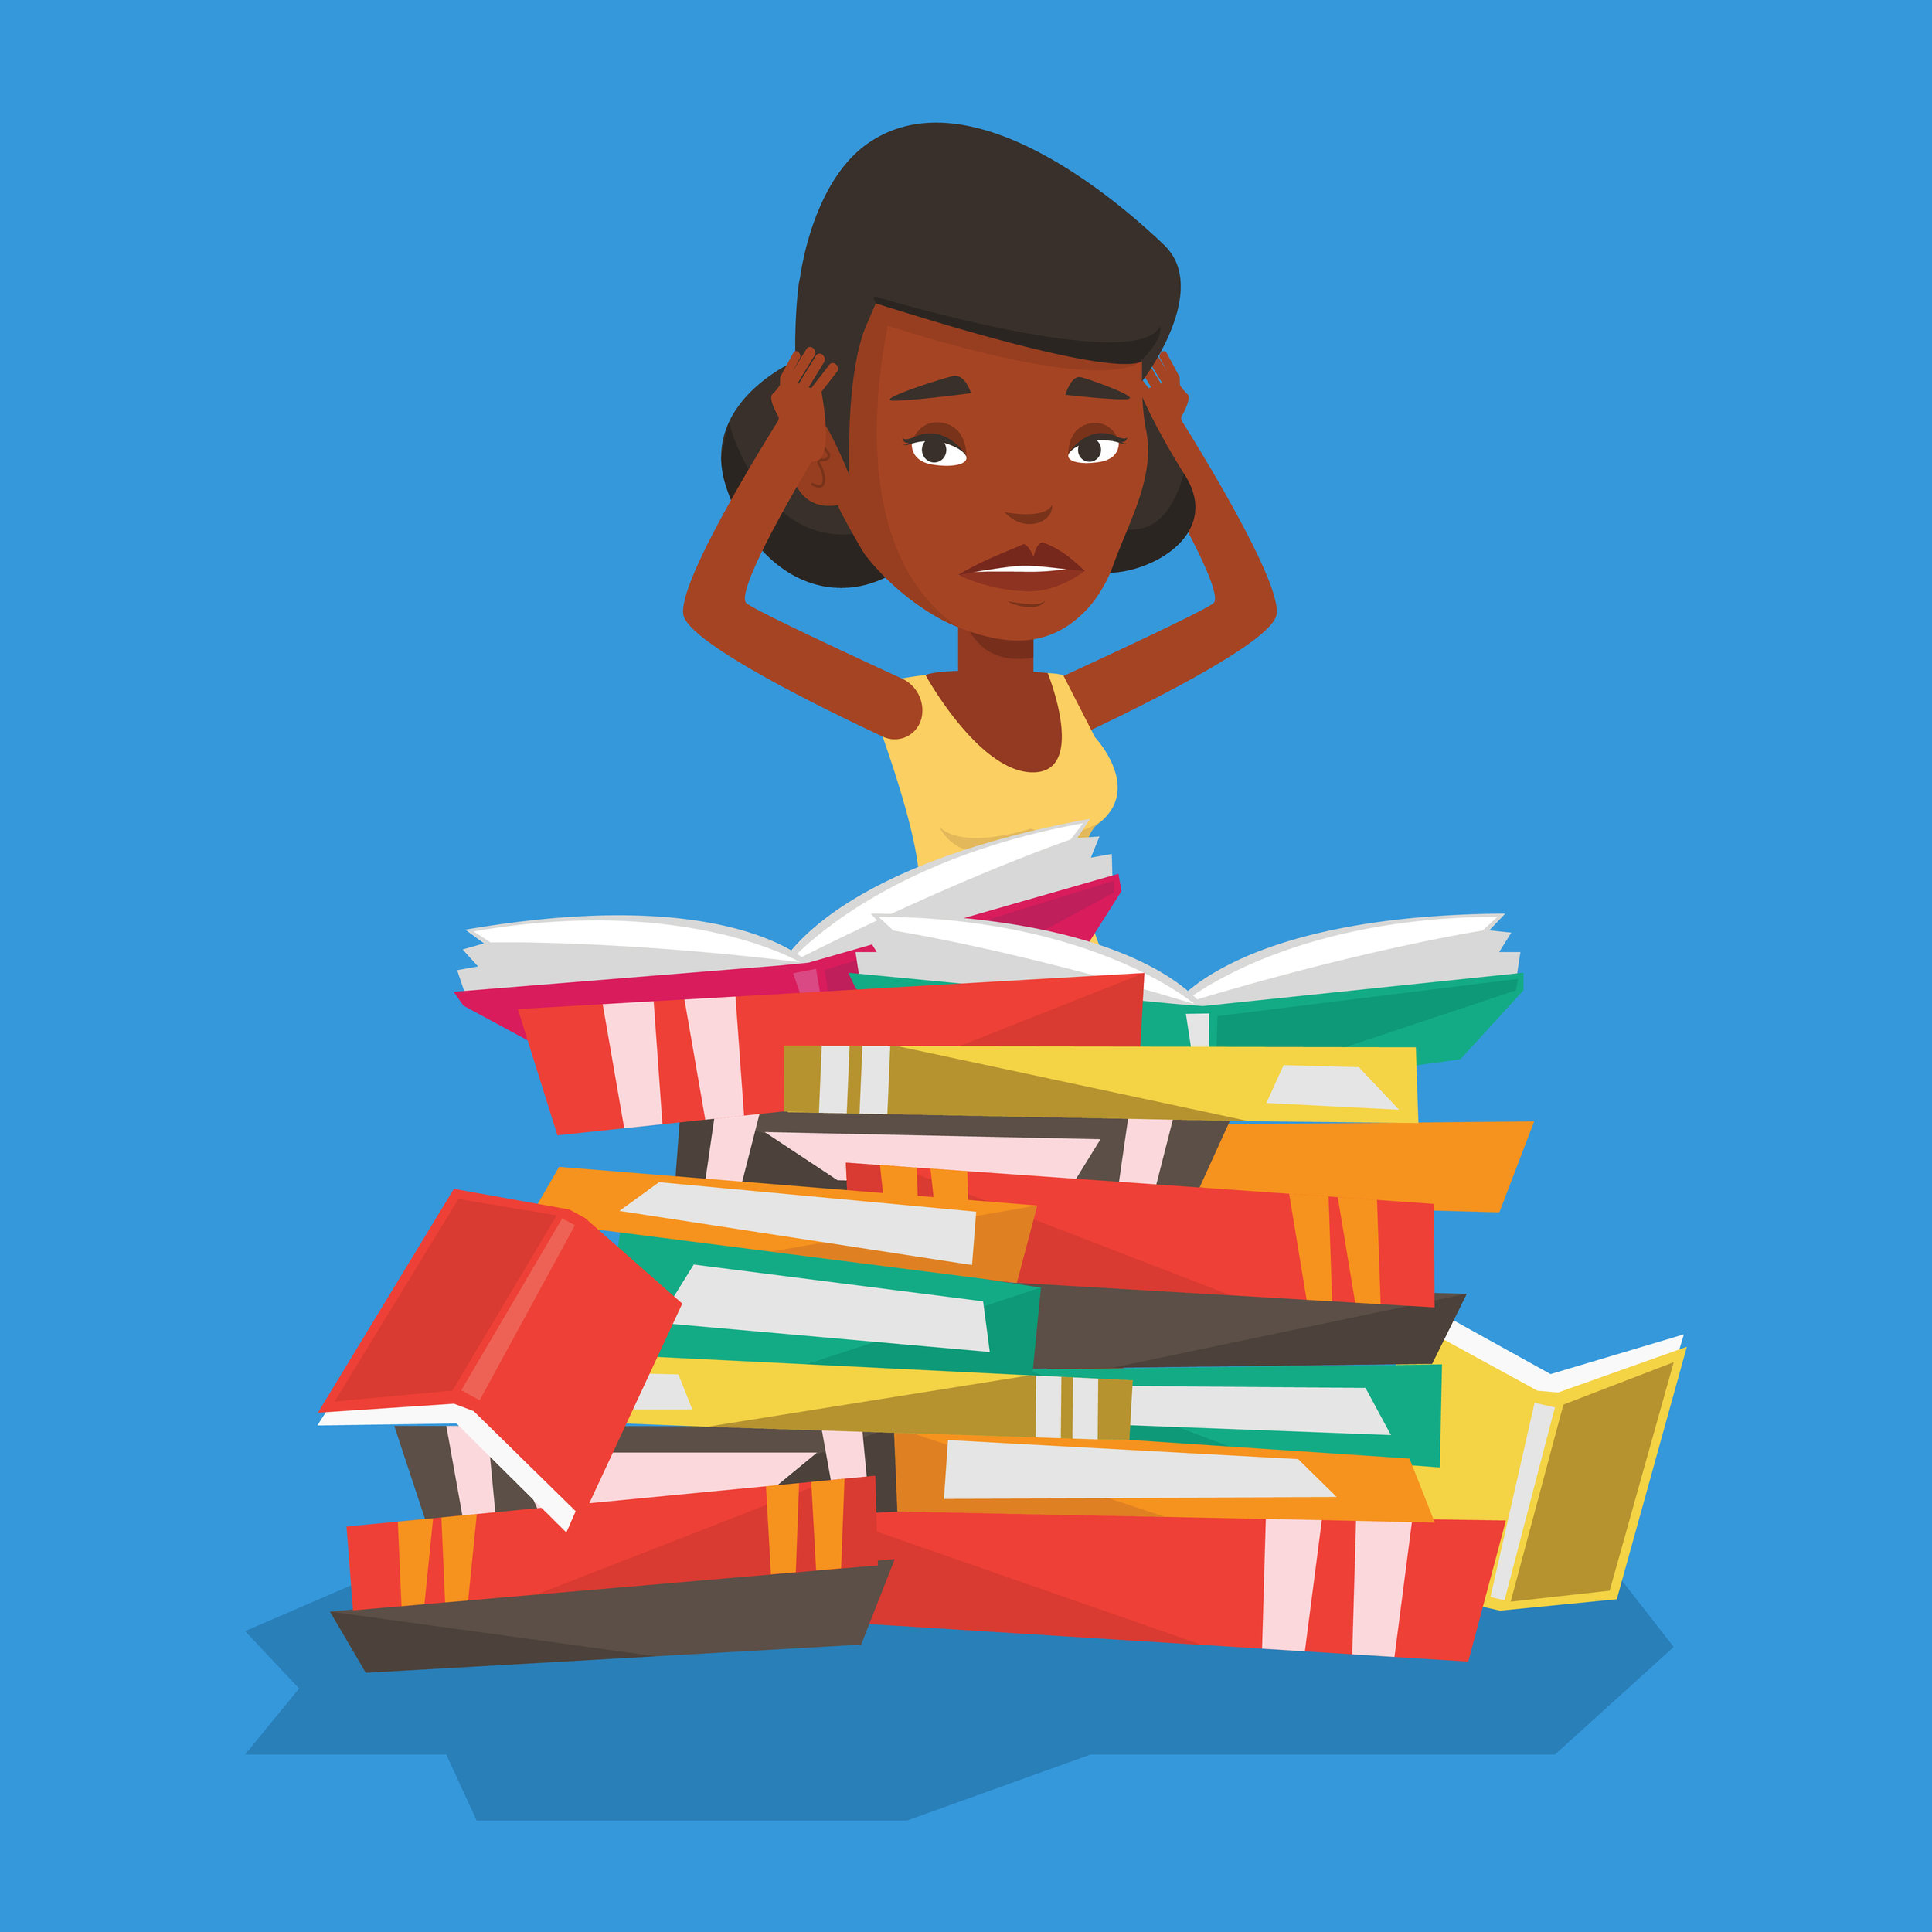 graphicstock-an-african-student-sitting-in-huge-pile-of-books-exhausted-student-preparing-for-exam-with-books-stressed-student-reading-books-concept-of-education-vector-flat-design-illustration-square-layout_BQWBu5IIb_L.jpg